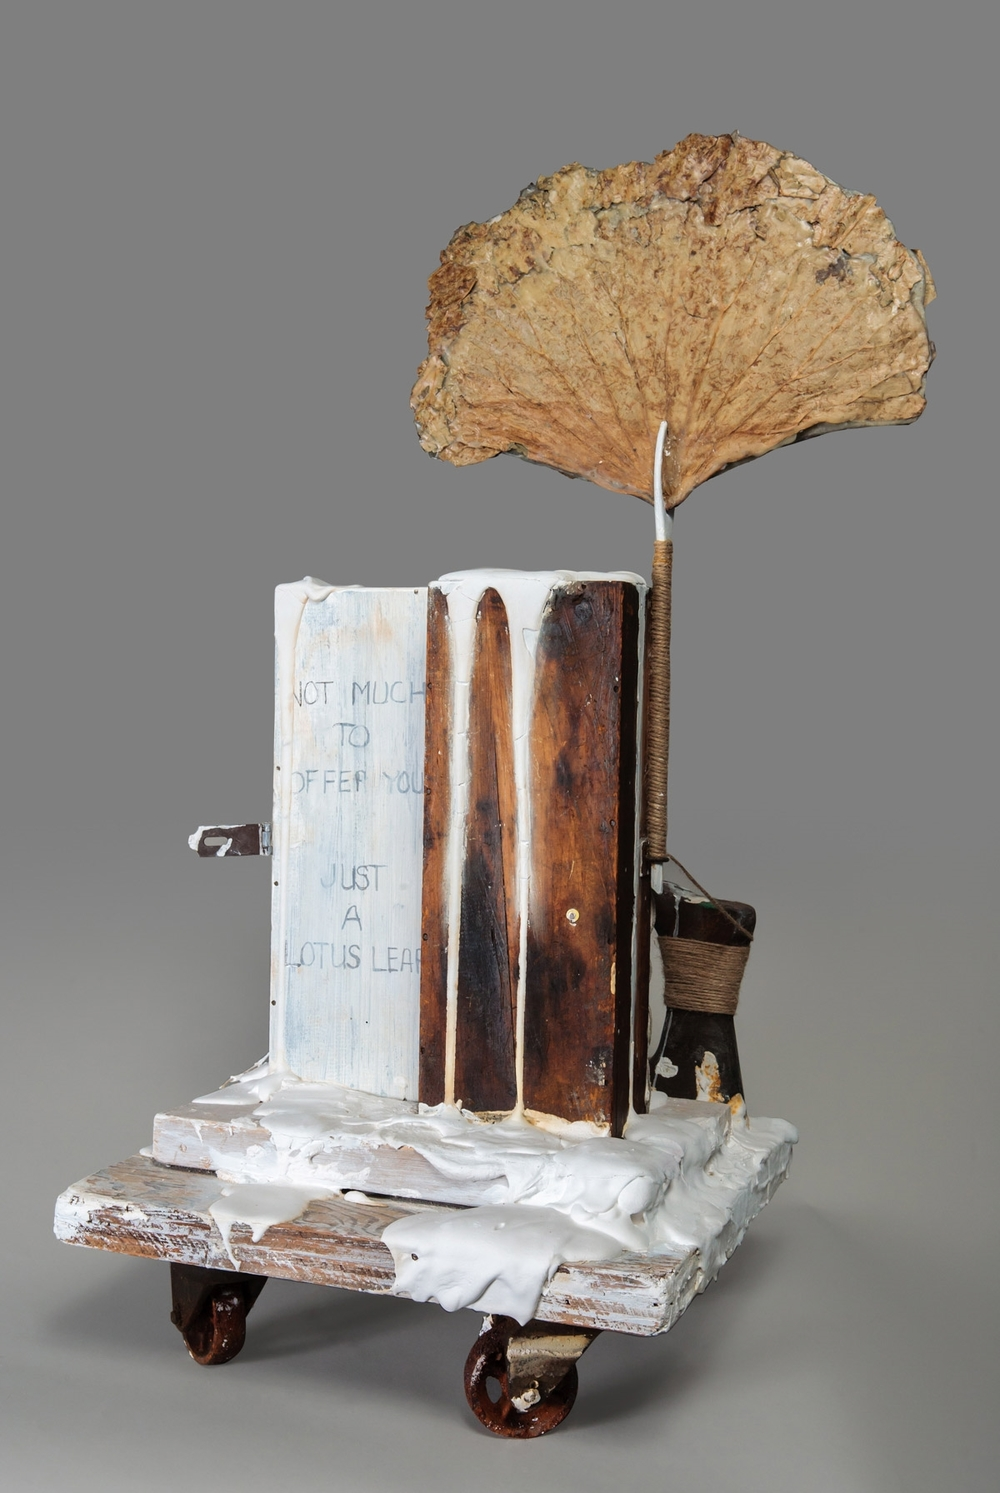 Out of the Earth  (Back) Found objects, burlap, dried plant material, plaster, white paint, encaustic, graphite, twine, glue, and nails 36.5 x 18 x 16.5 in/ 92.7 x 45.7 x 41.9 cm